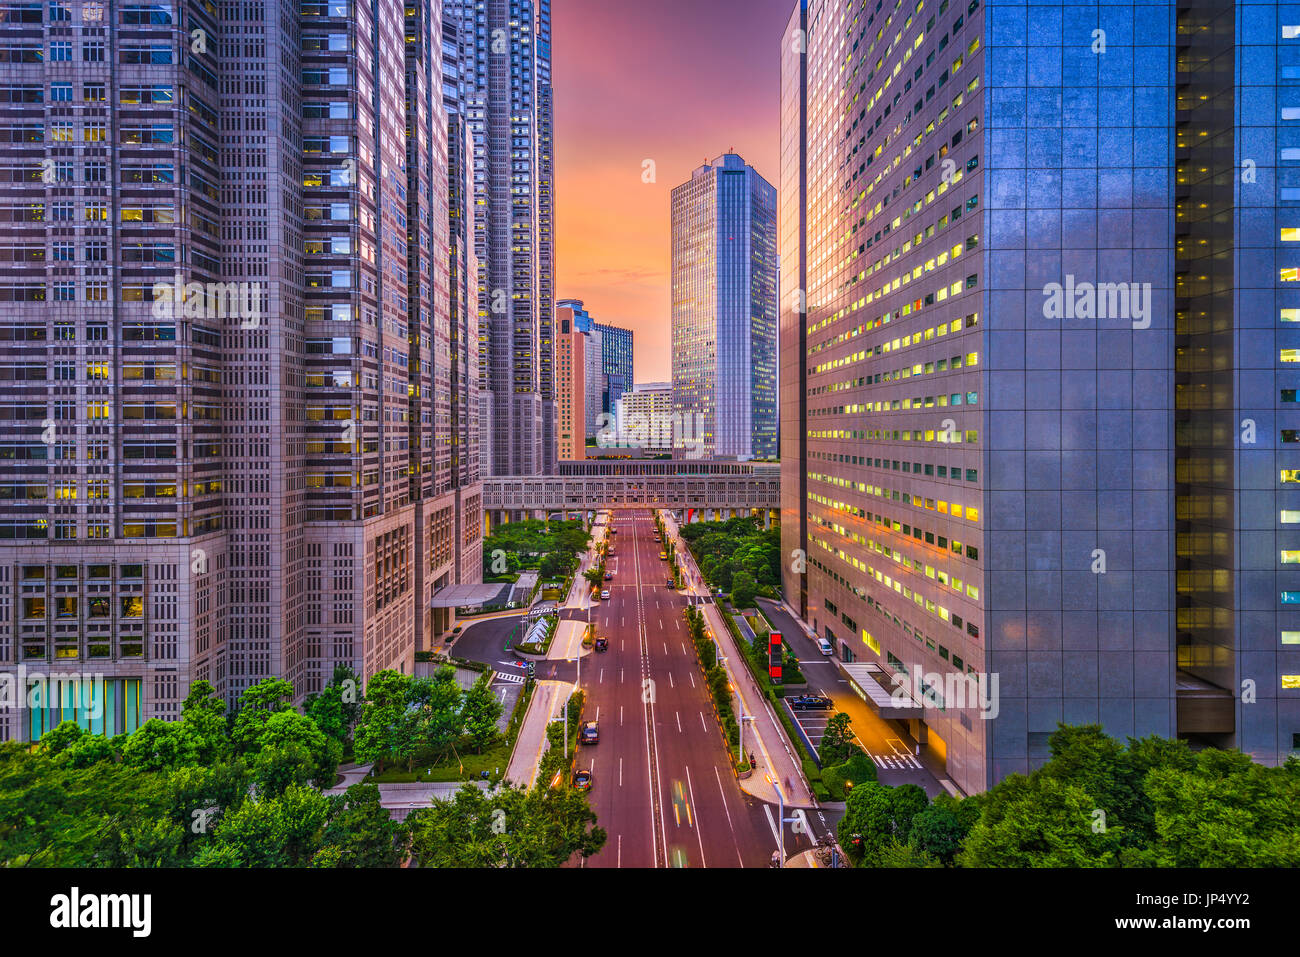 Shinjuku, Tokyo, Japan financial district and government buildings cityscape. - Stock Image